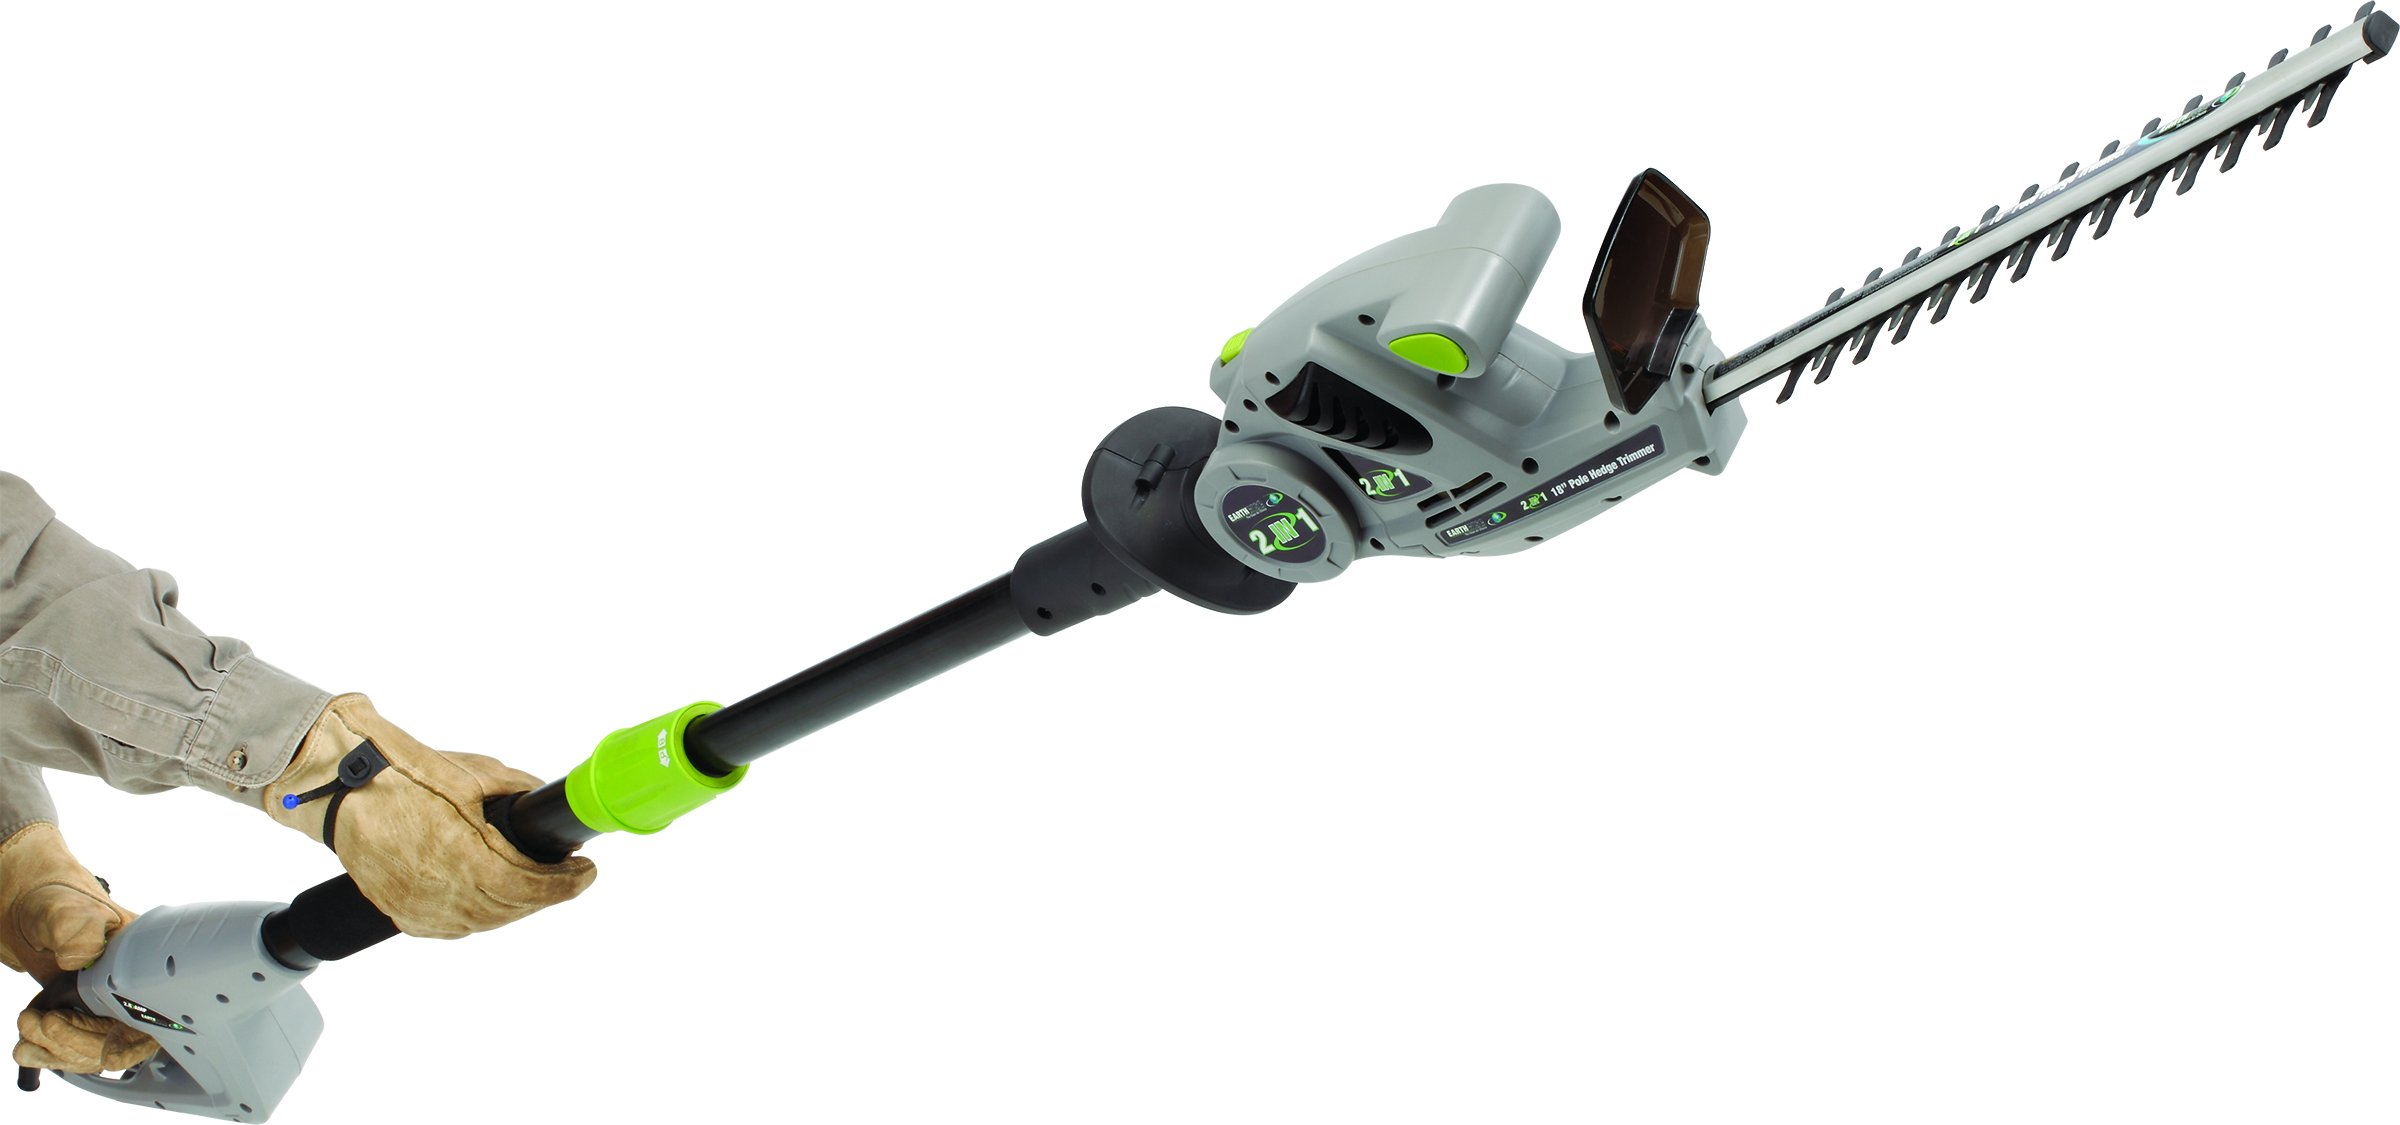 Earthwise CVPH41018 18-Inch 2.8-Amp Corded Electric 2-in-1 Pole/Handheld Hedge Trimmer